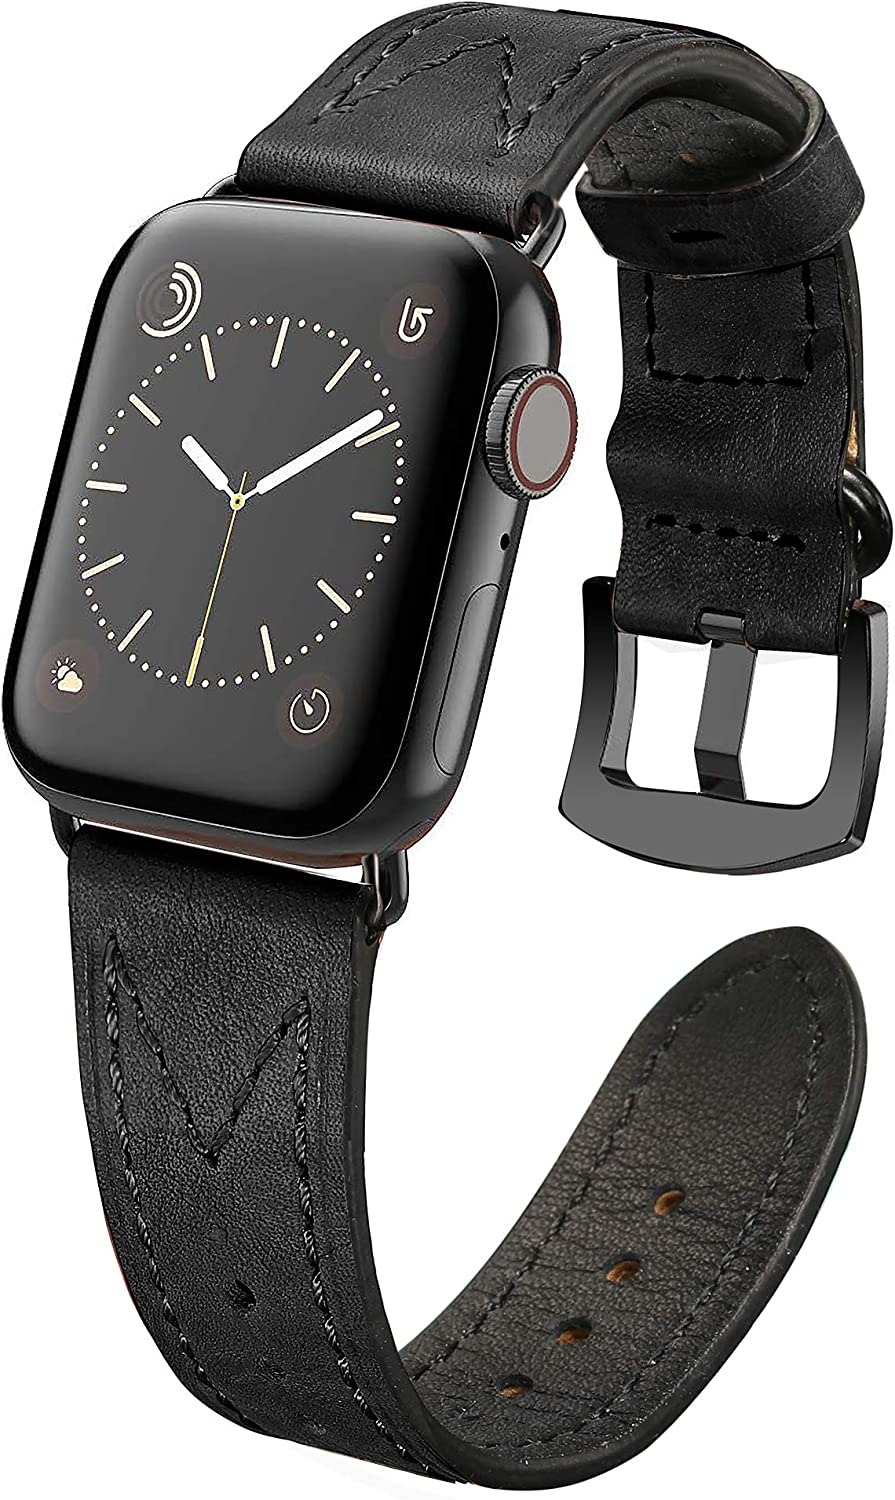 Secbolt Leather Bands Compatible with Apple Watch Band 38mm 40mm iWatch Series 6/5/4/3/2/1 SE, Soft Top Grain Genuine Leather Wristband Strap Accessories Women Men, Black 2 (38/40mm)